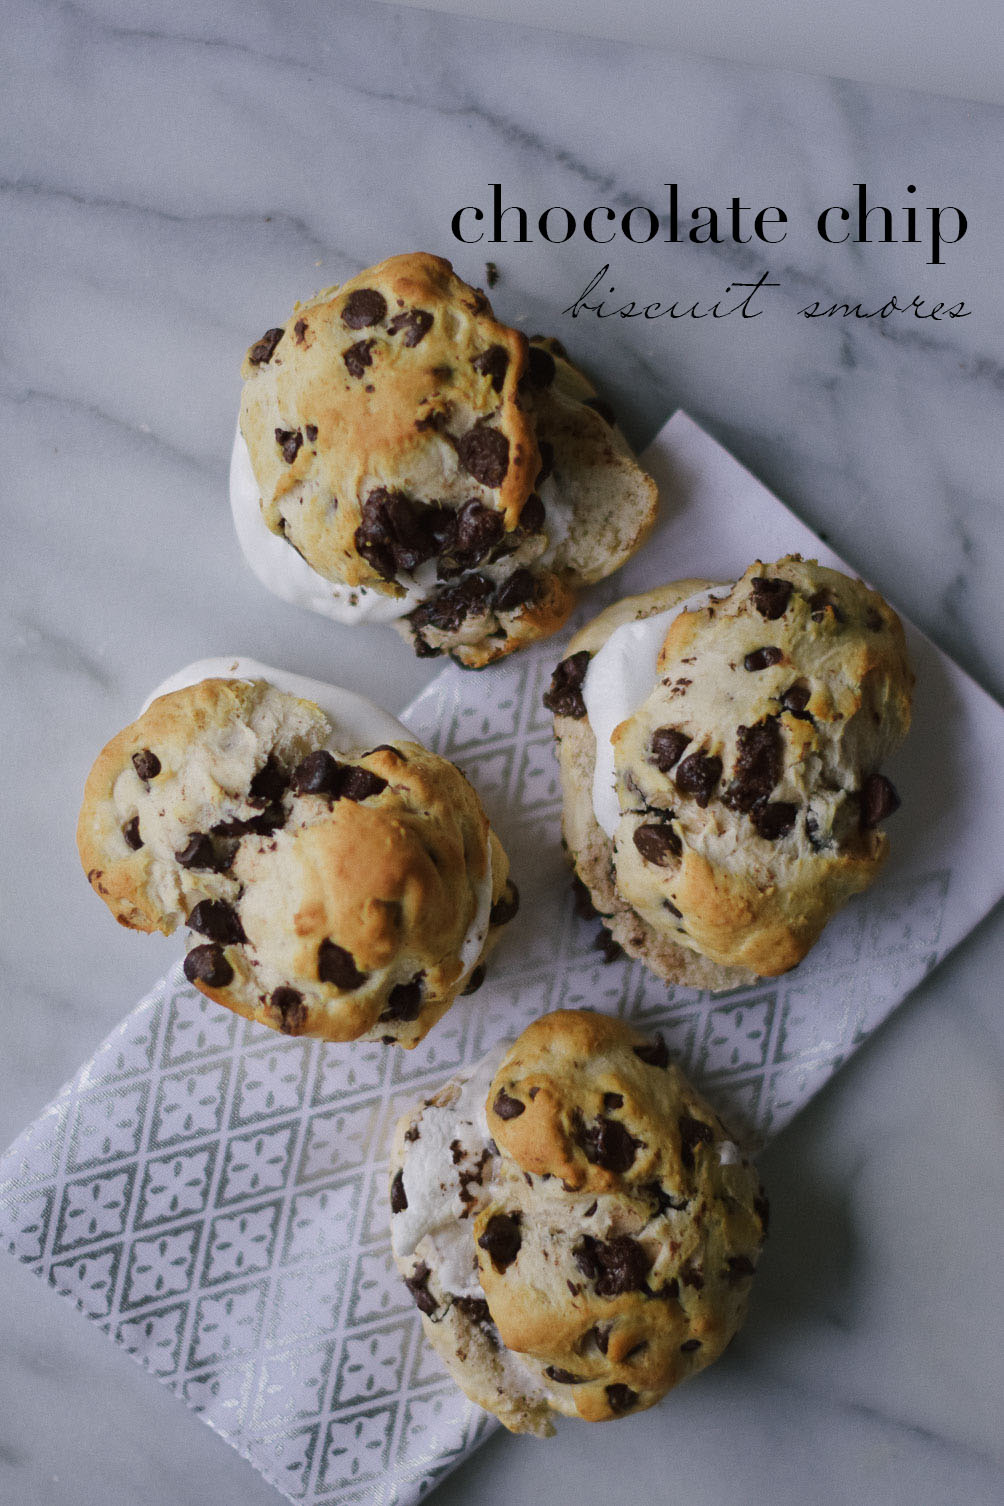 chocolate-chip-biscuit-smores-11-copy